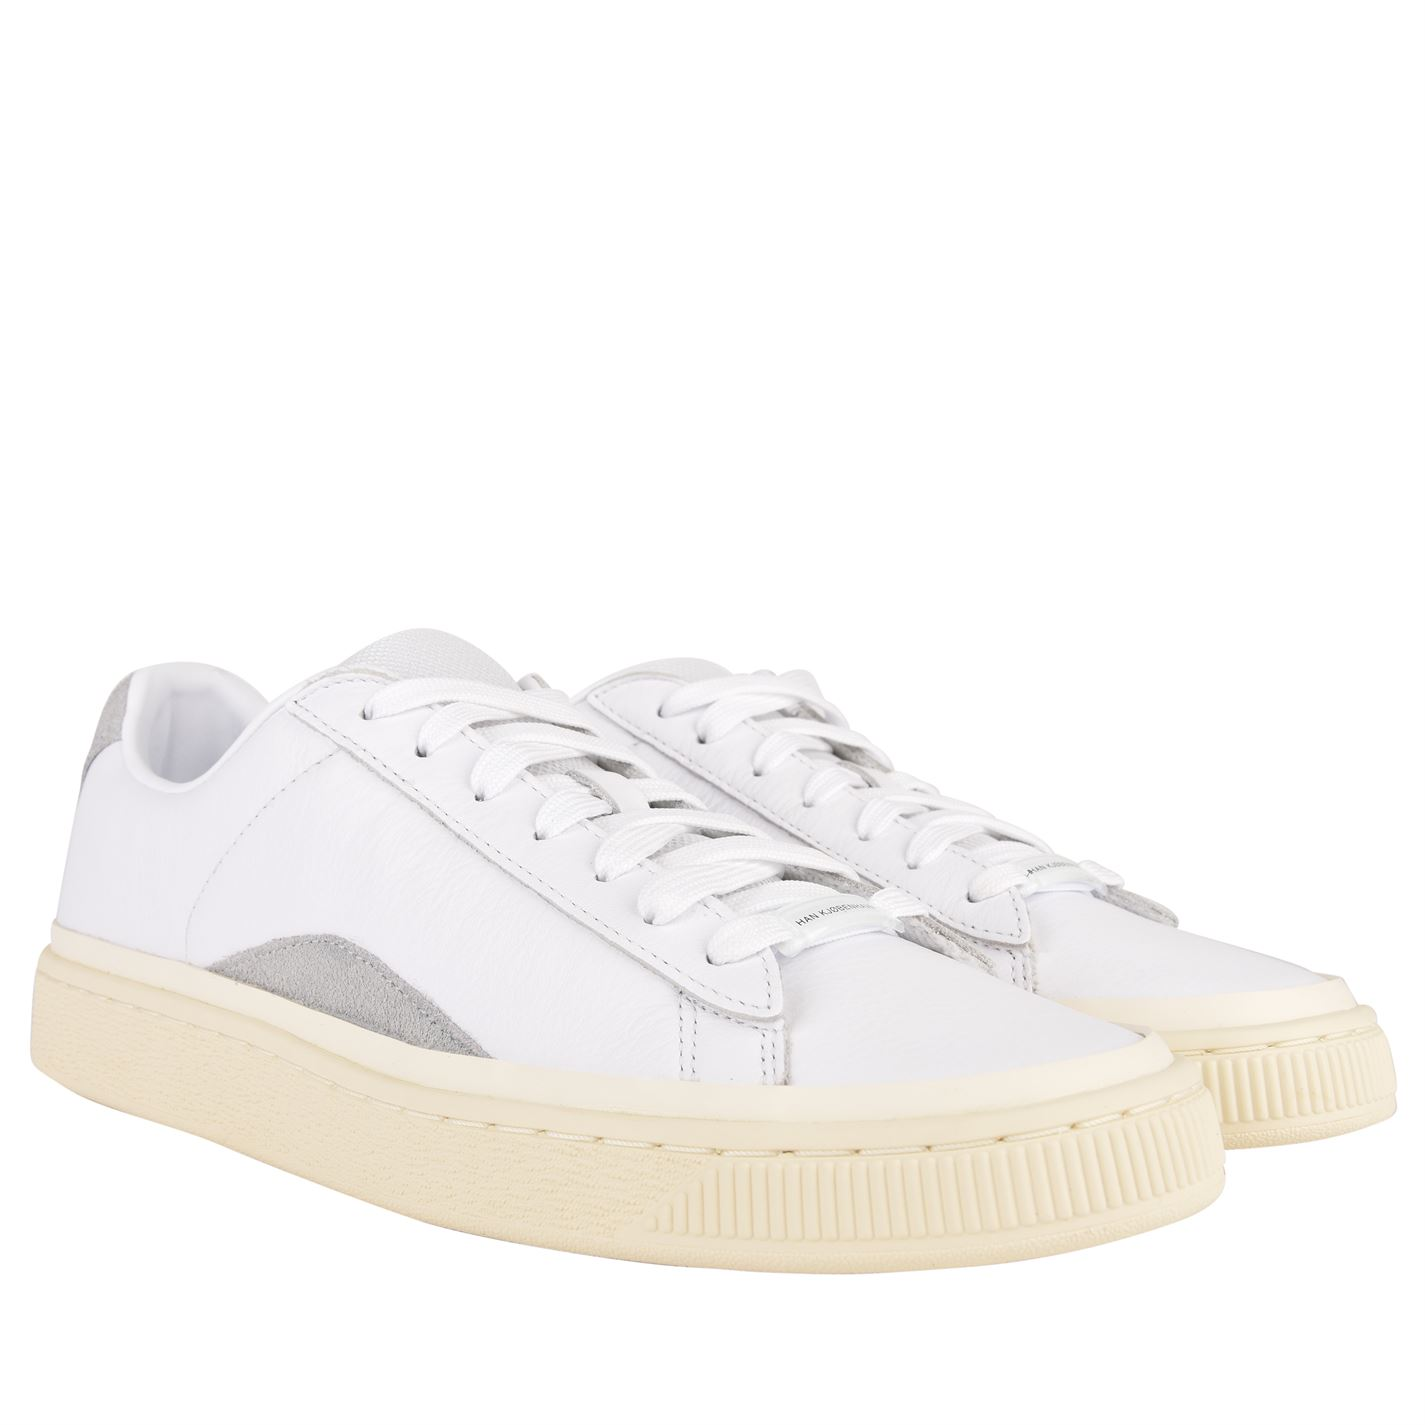 9461eecbdfb089 PUMA X Han Kjobenhavn Mens Low Top Trainers Leather Upper Casual ...